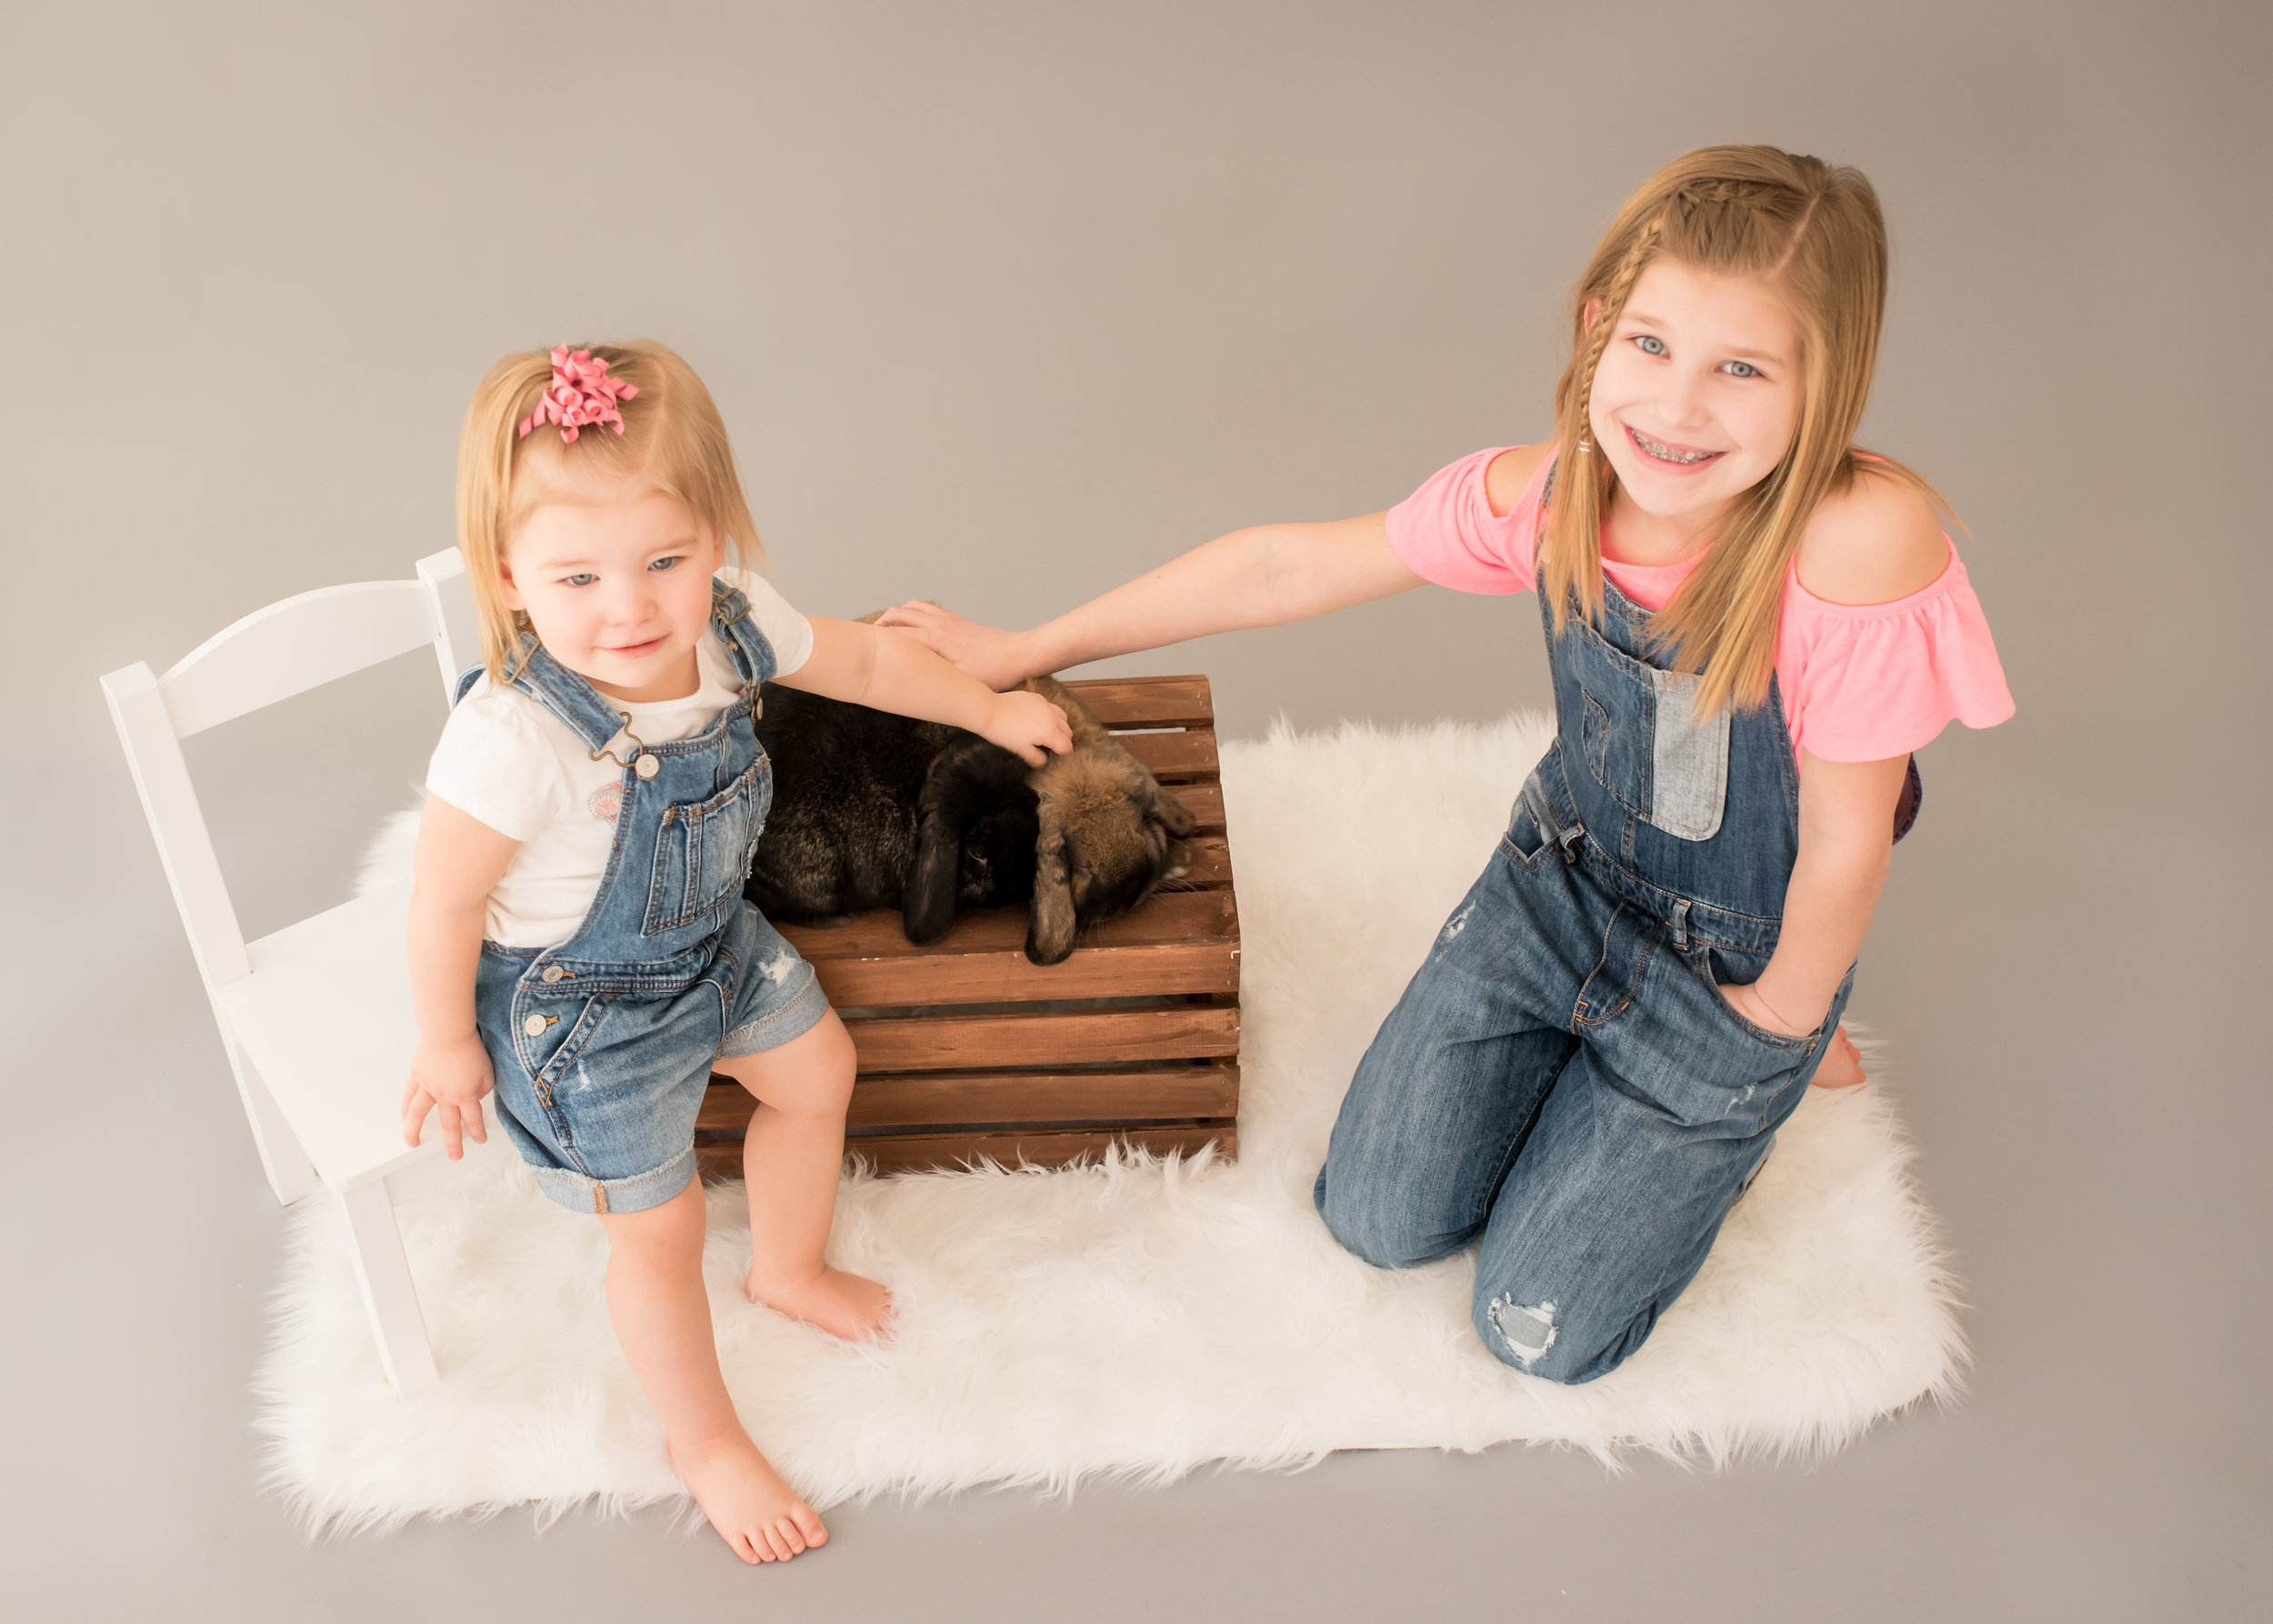 Cleveland Child Photographer, Cleveland Child Photography, Cleveland Family Photography,